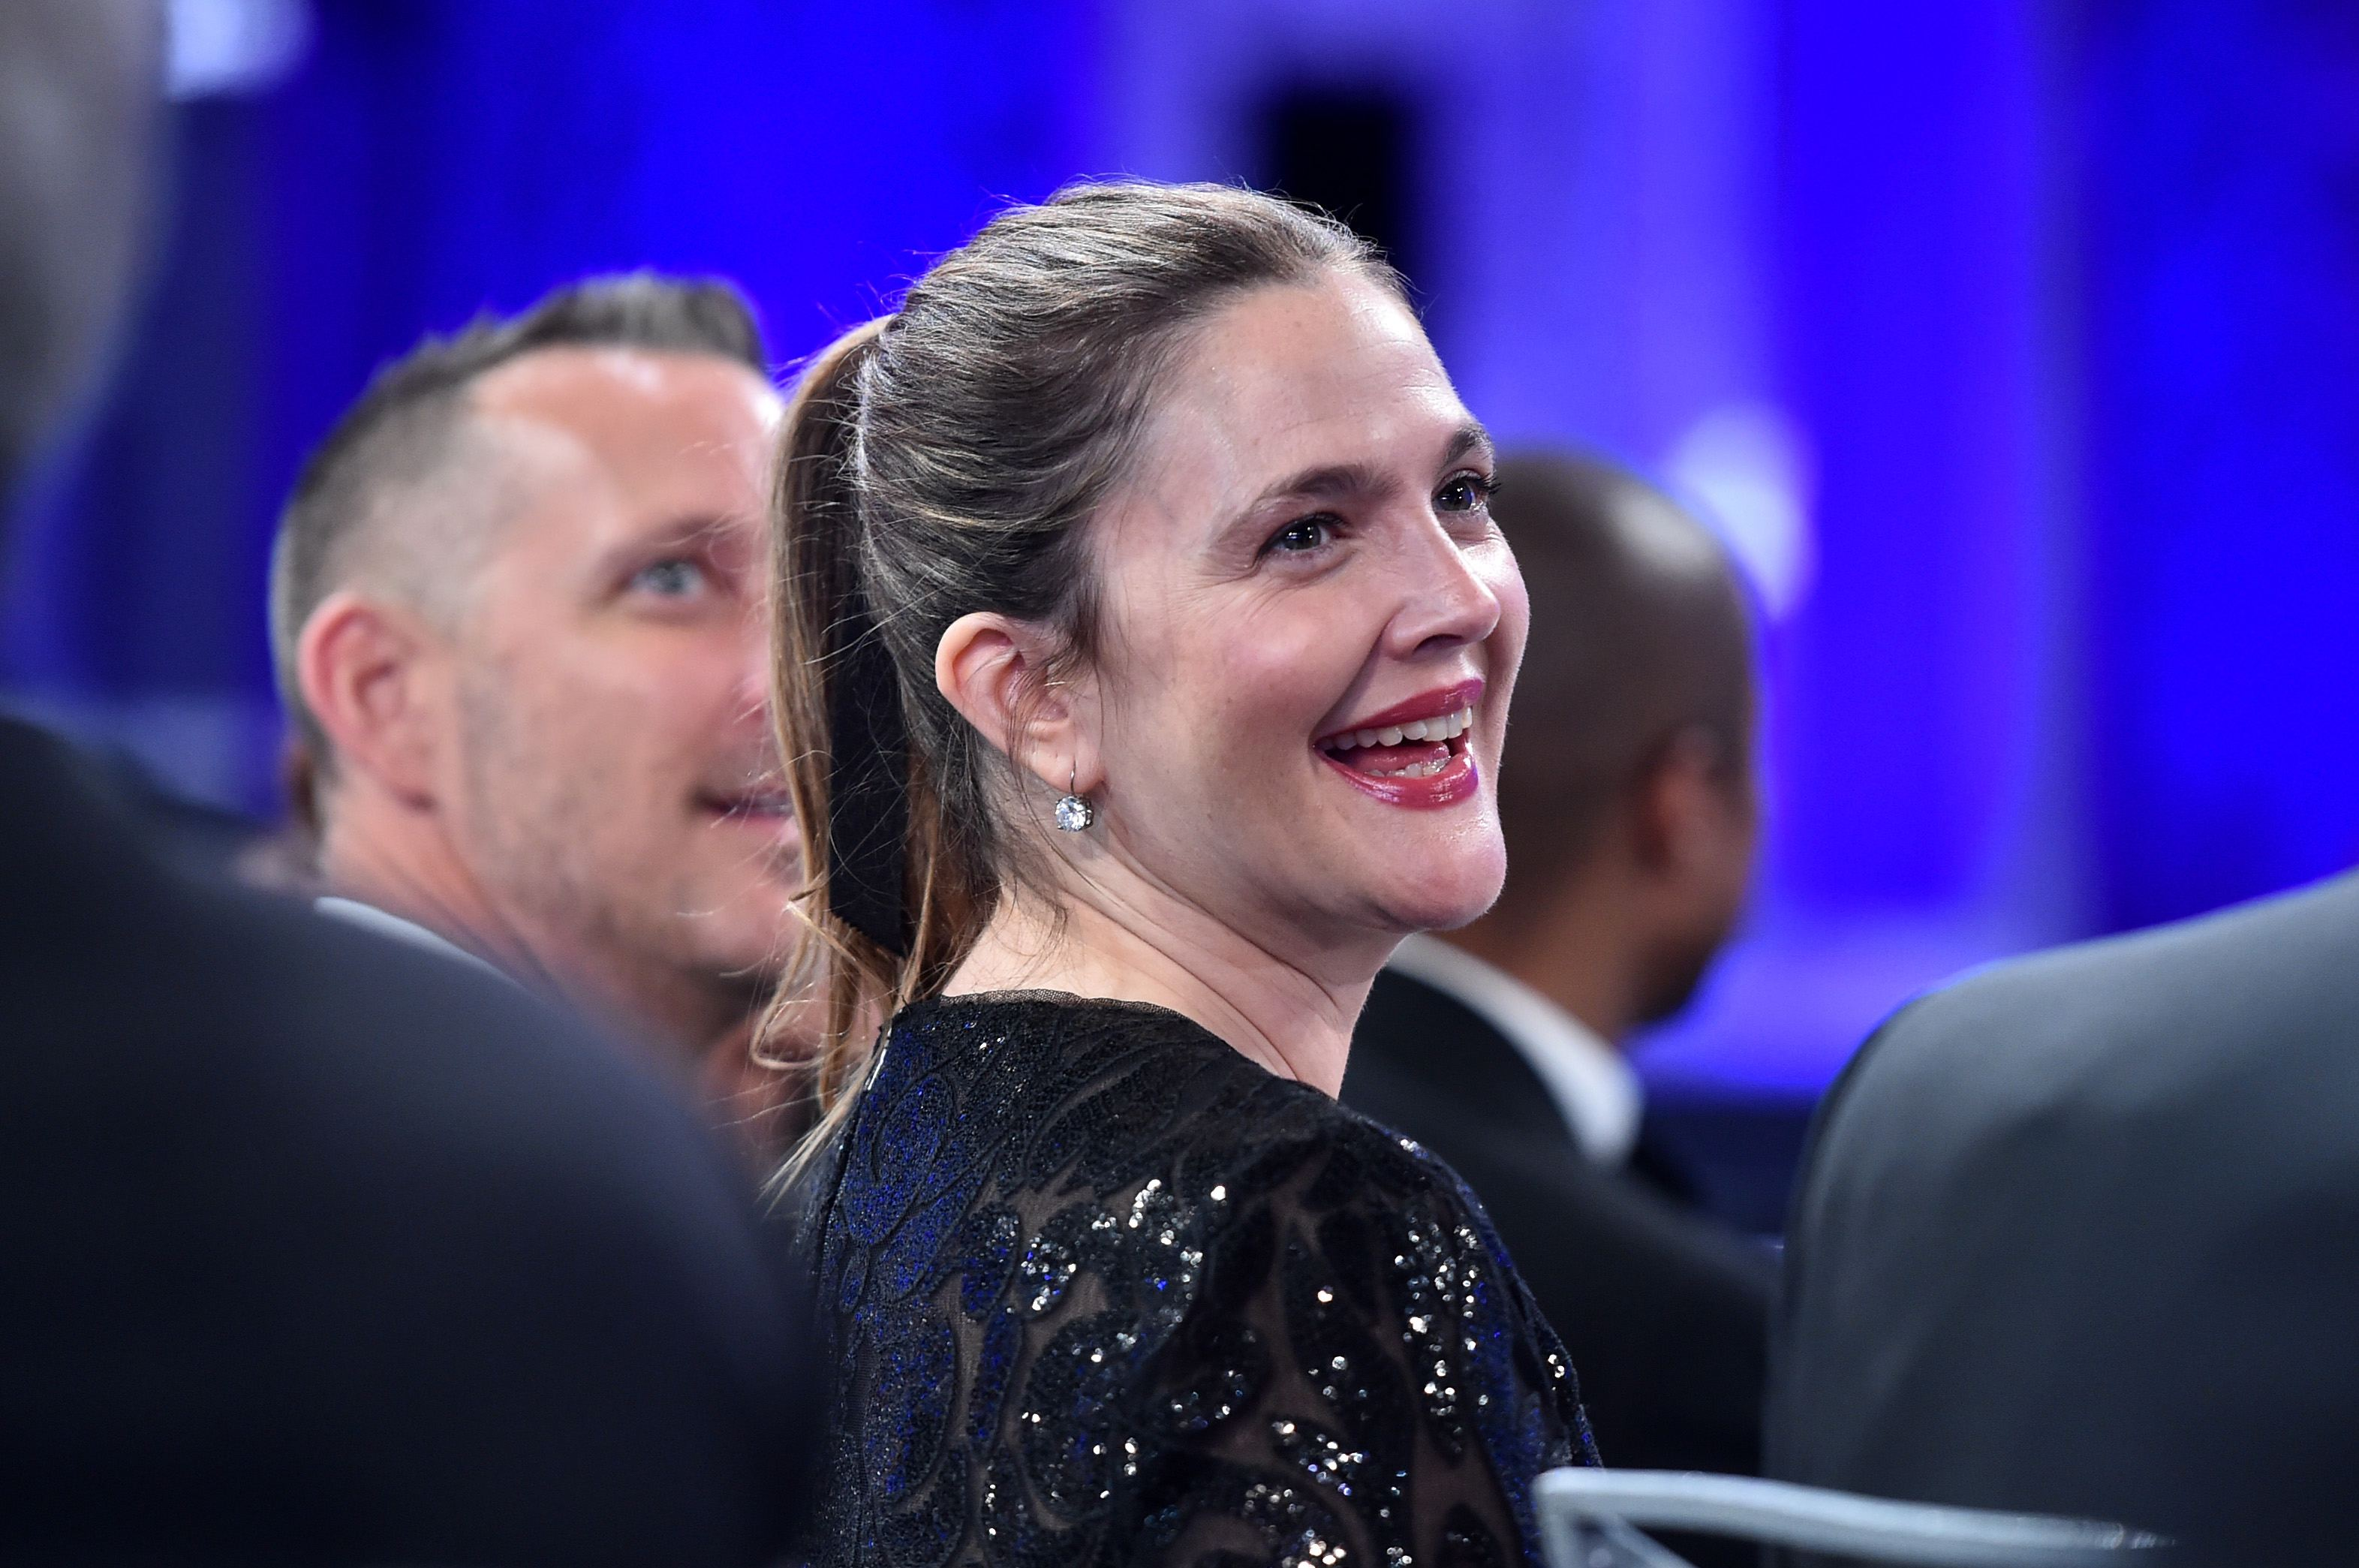 Drew Barrymore laughs